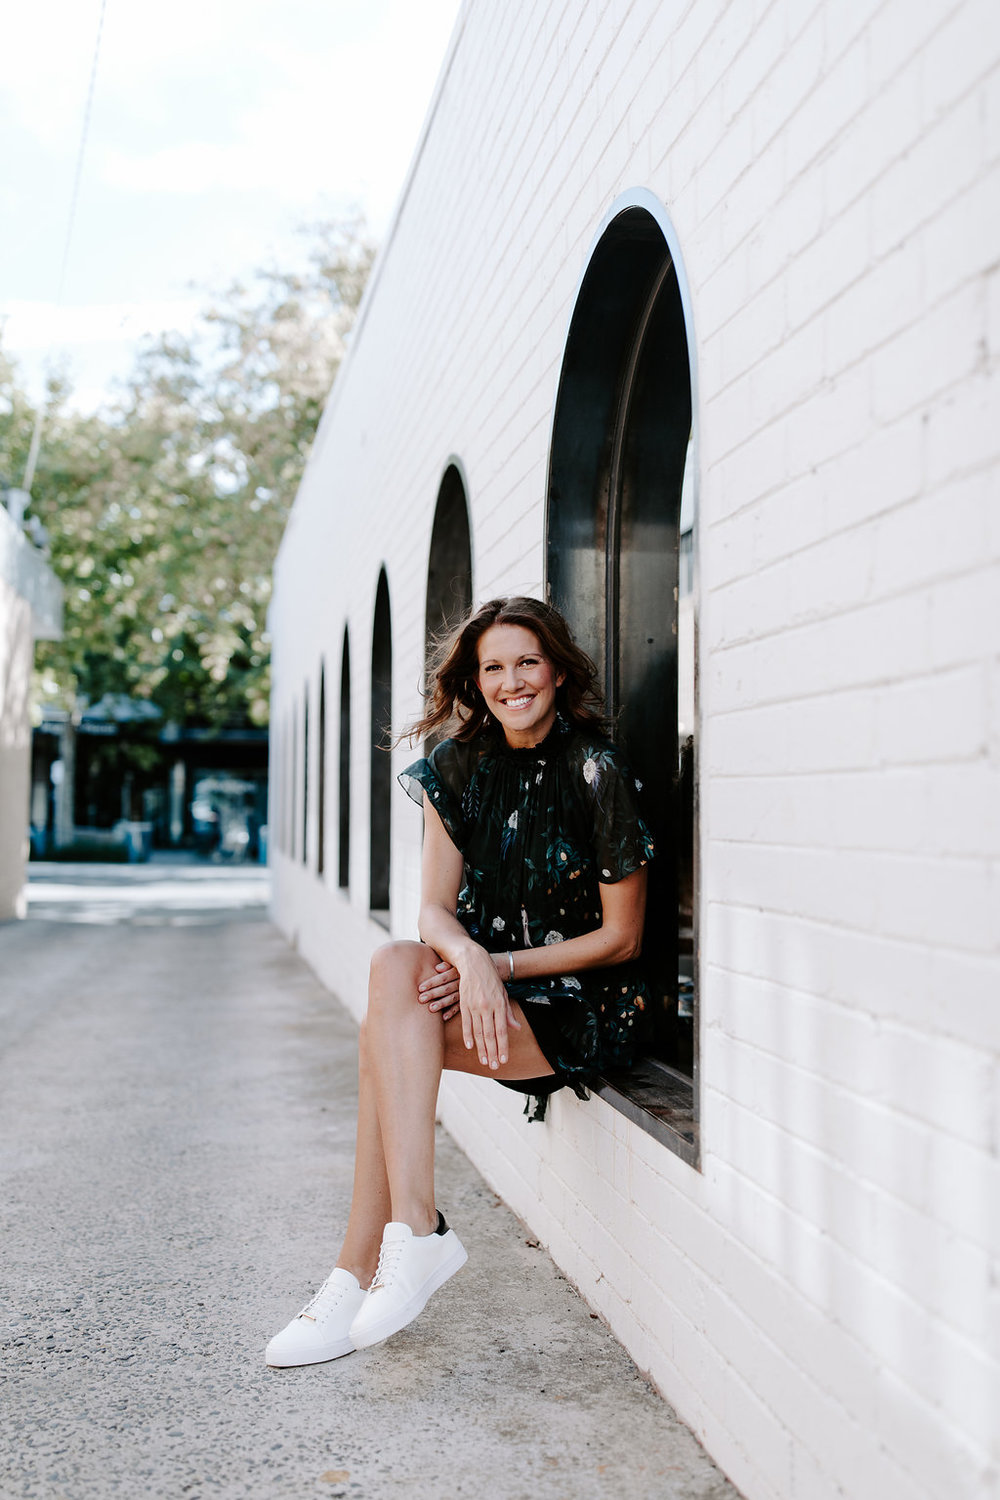 """""""I have had the pleasure to work alongside Lisa on the prestigious DvF Penthouse and Hayman Island Residence projects - the most expensive Island residences in the world. Lisa is meticulous, creative and extremely easy to work with. I would highly recommend Lisa for any project that required a hands on, flexible and talented artist.""""    — Lloyd Donaldson, CEO The Lloyd James Group Pier Alpha Formerly Managing Director of Hayman 2000 - 2014."""